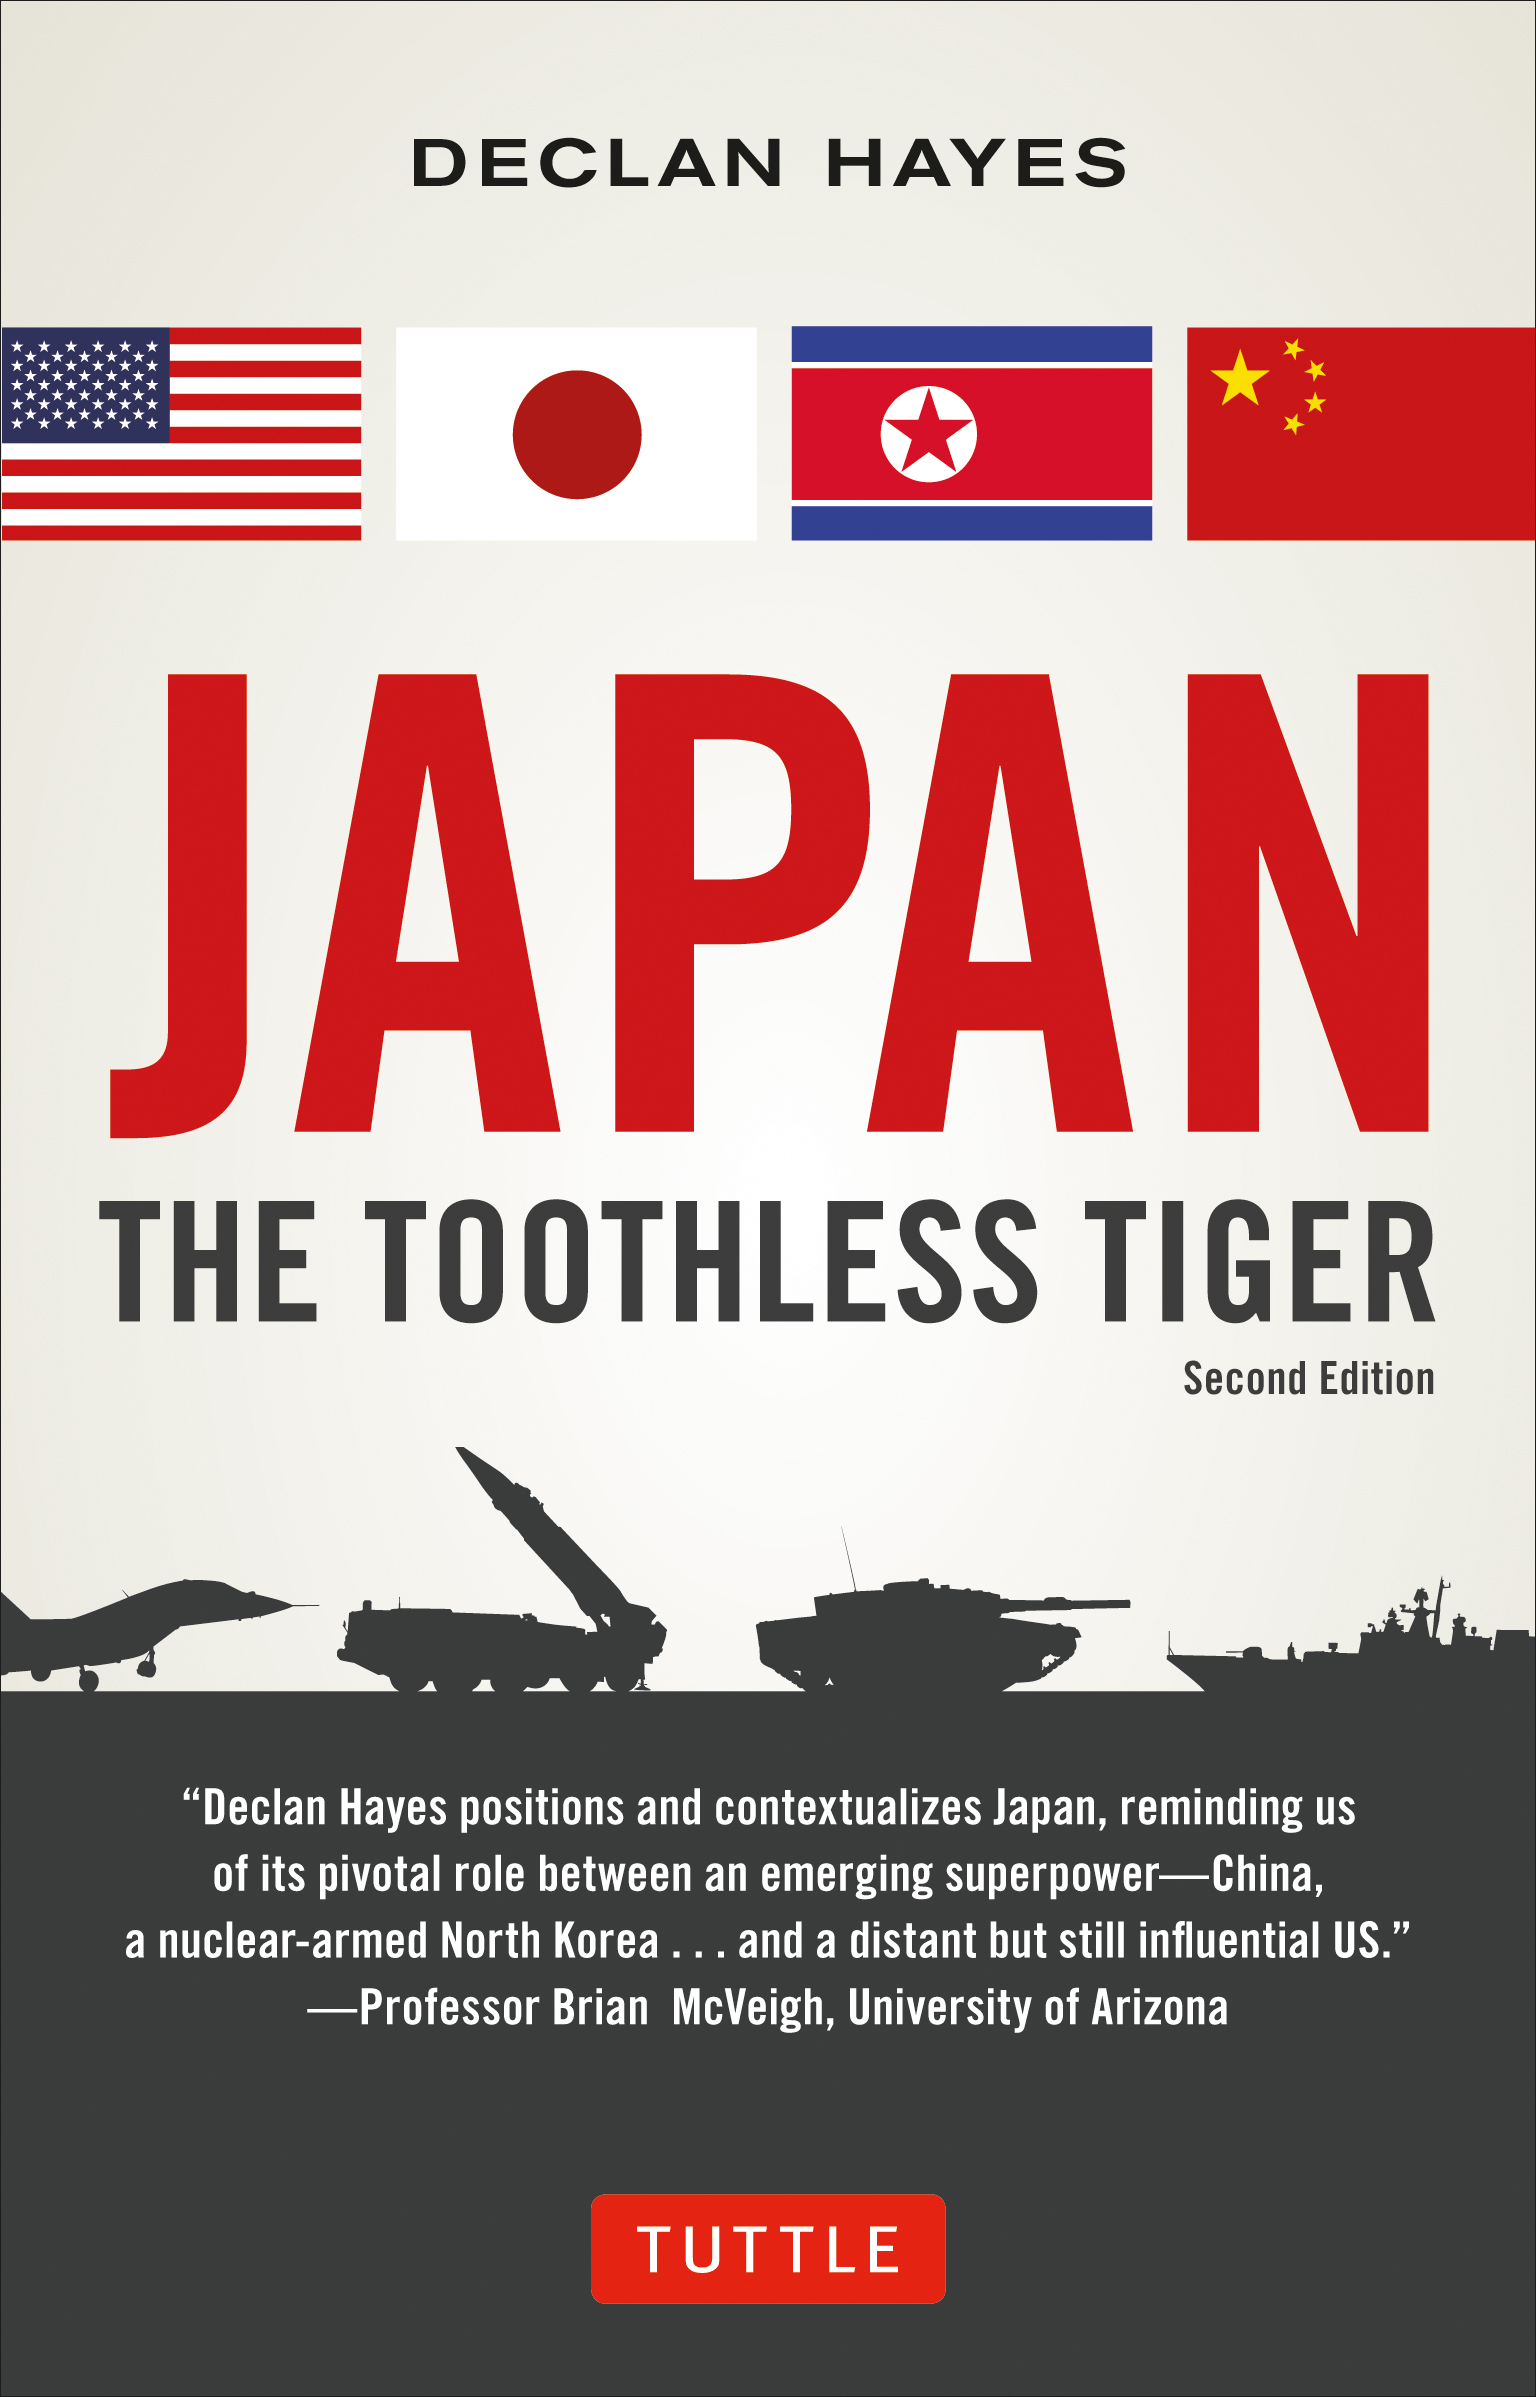 Japan-the-toothless-tiger-9784805313046_hr